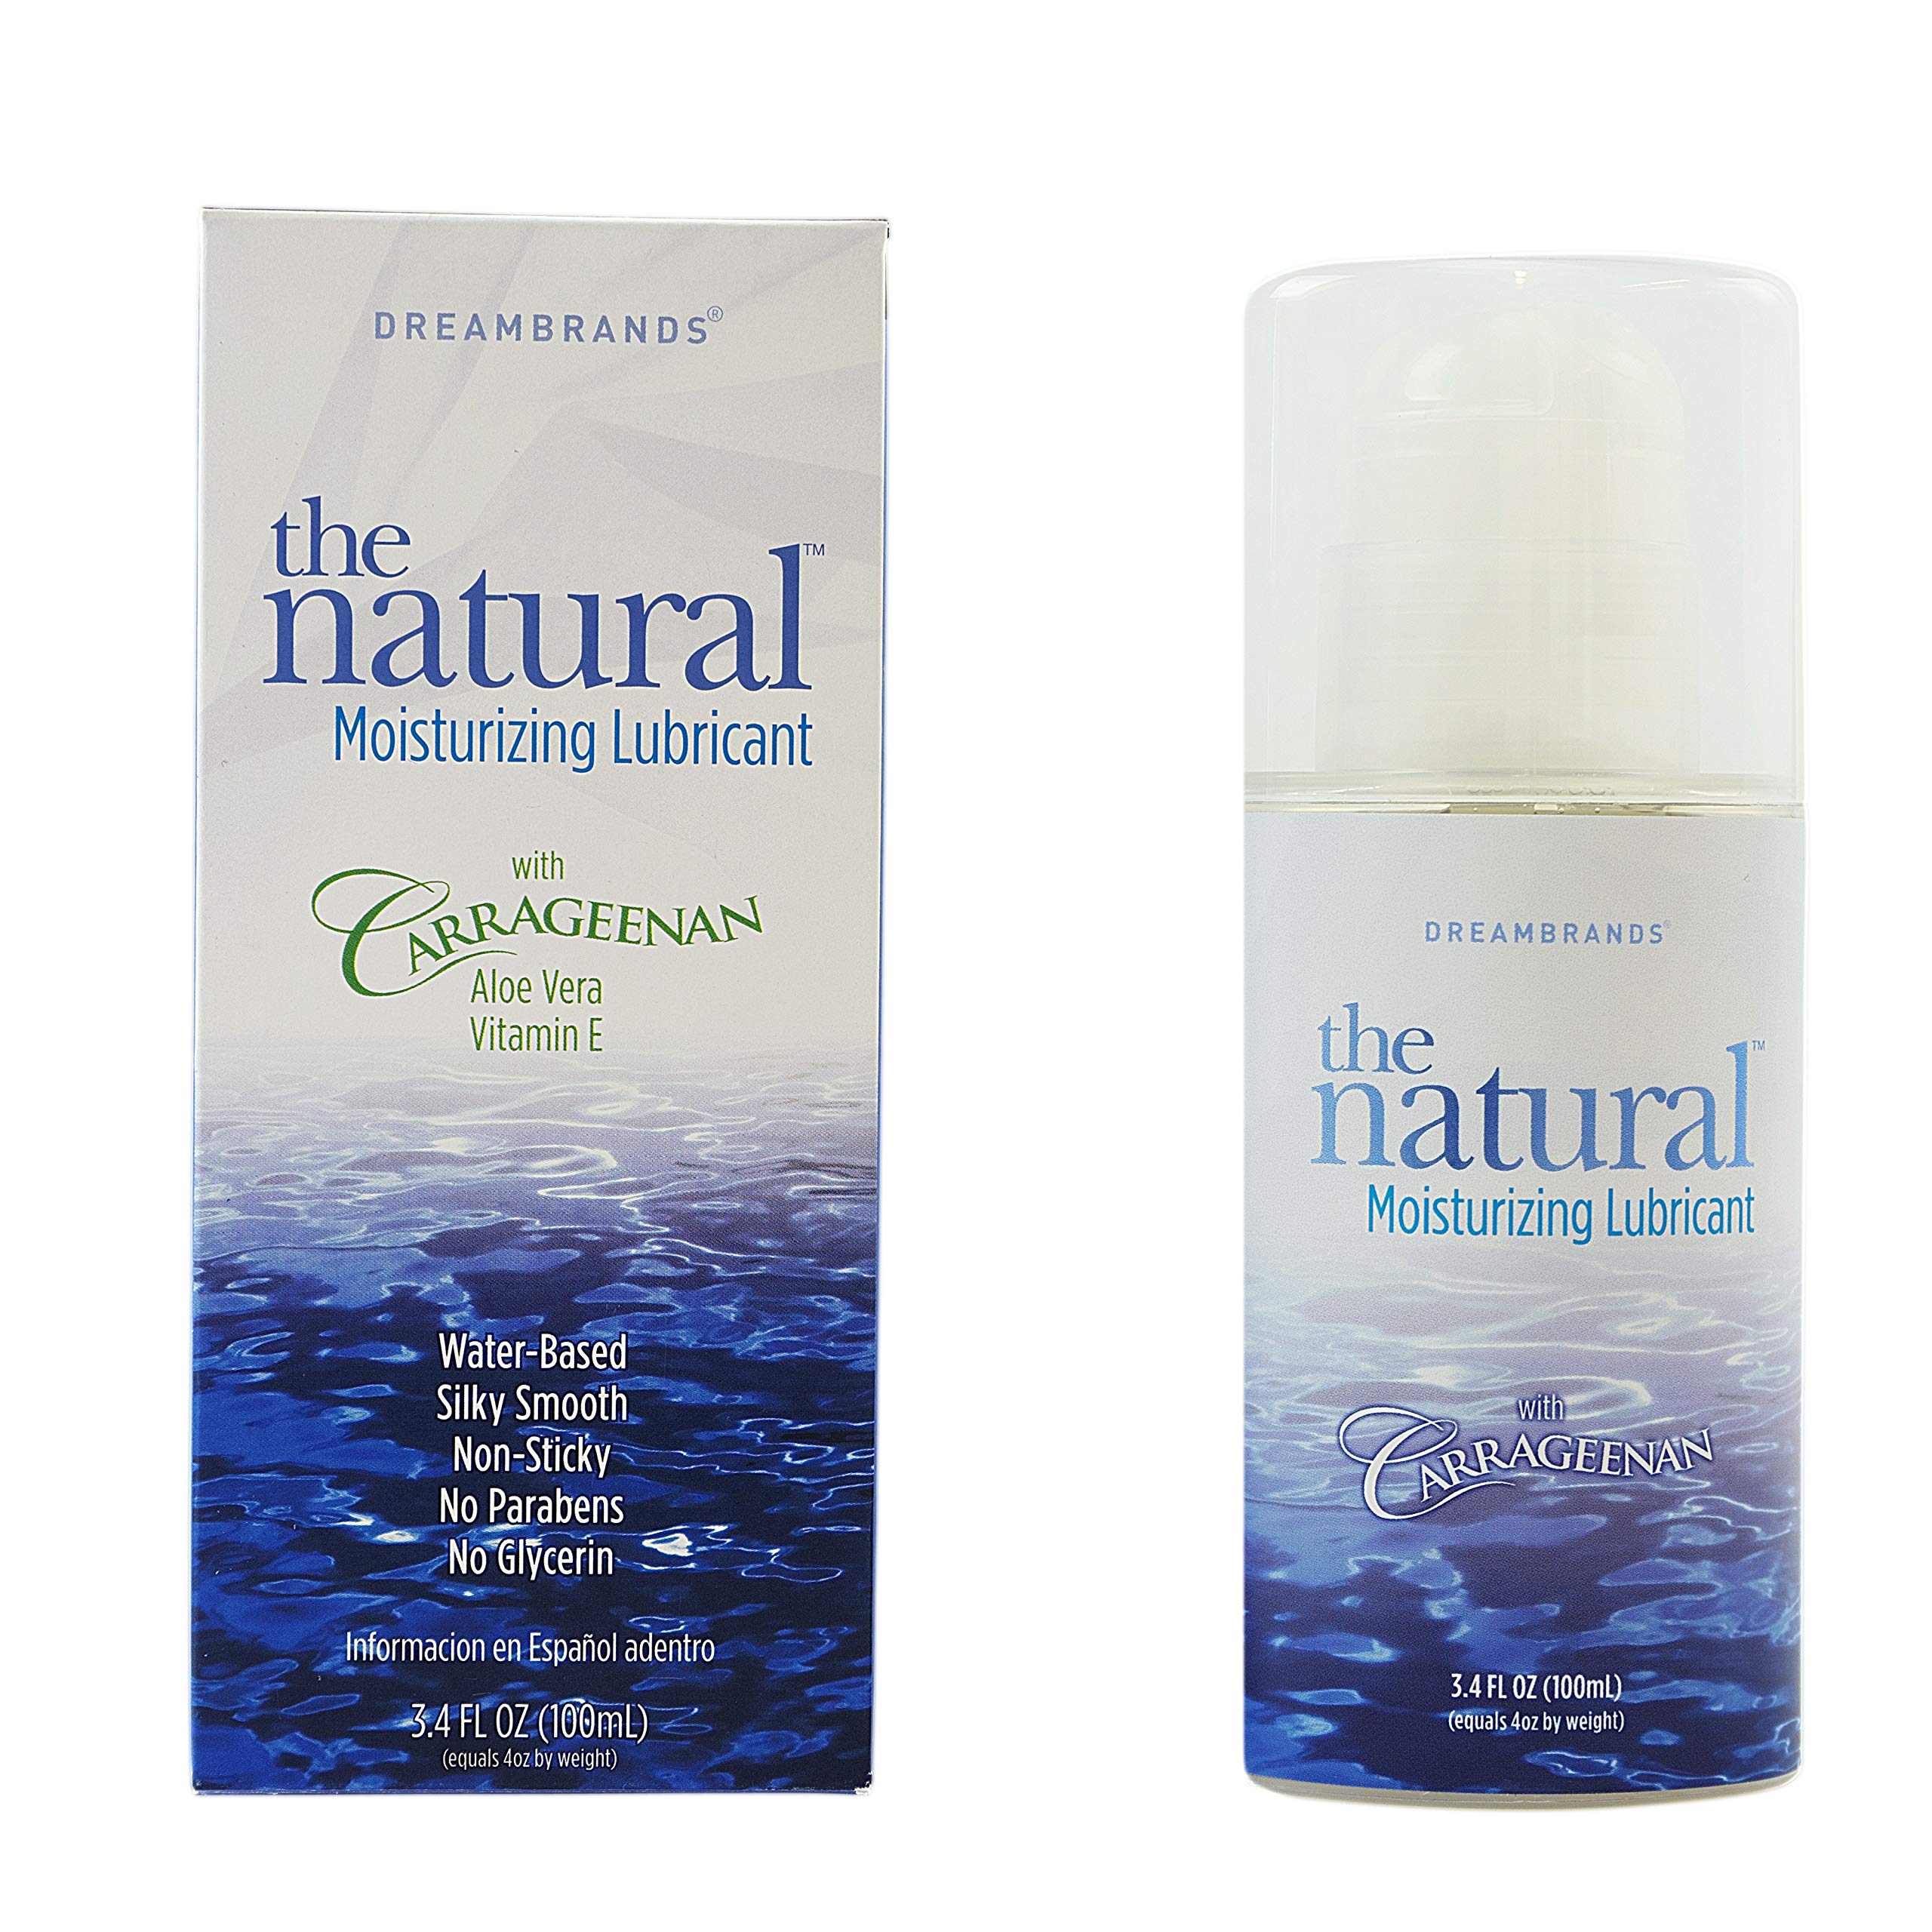 Dreambrands Carrageenan Love with Care Personal Lubricant -- 4 fl oz